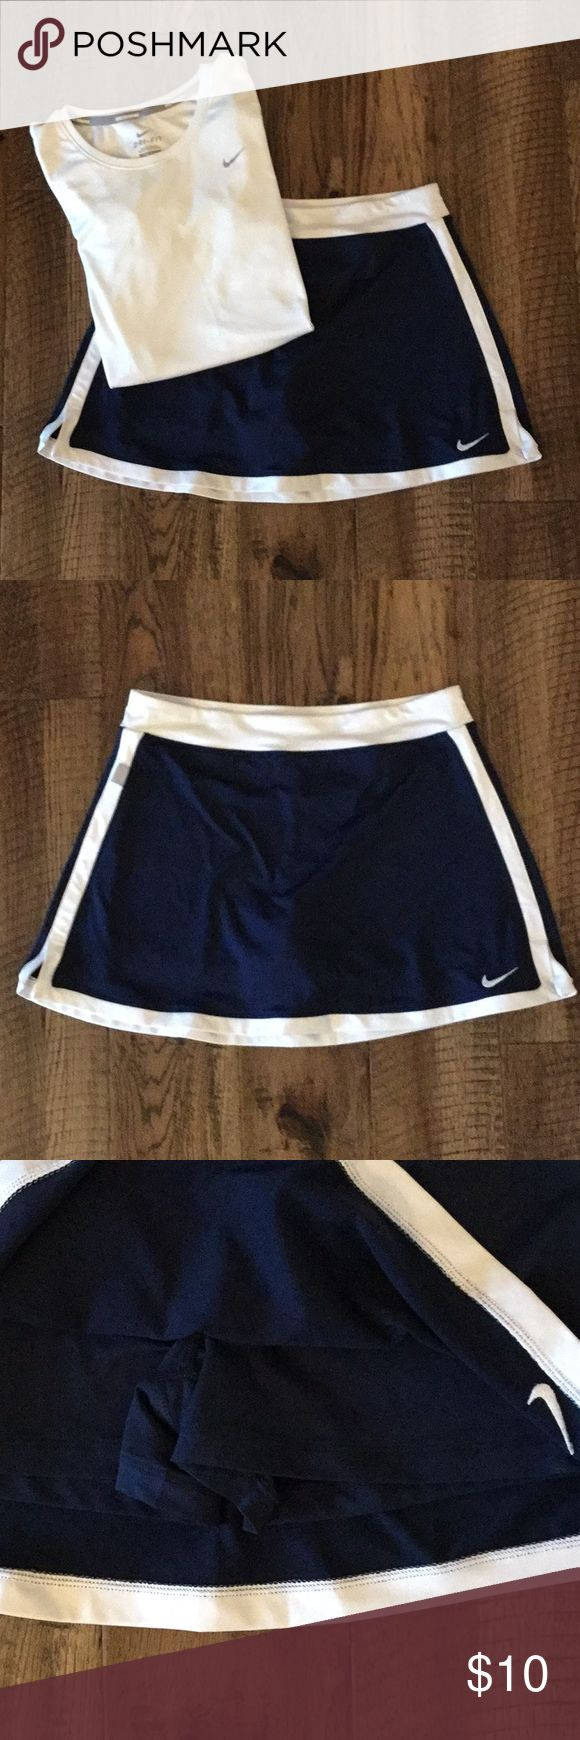 "Nike Tennis Skirt Navy Nike tennis skirt. In good condition. Tag says L girls waist measures 26"". Nike Skirts Mini"